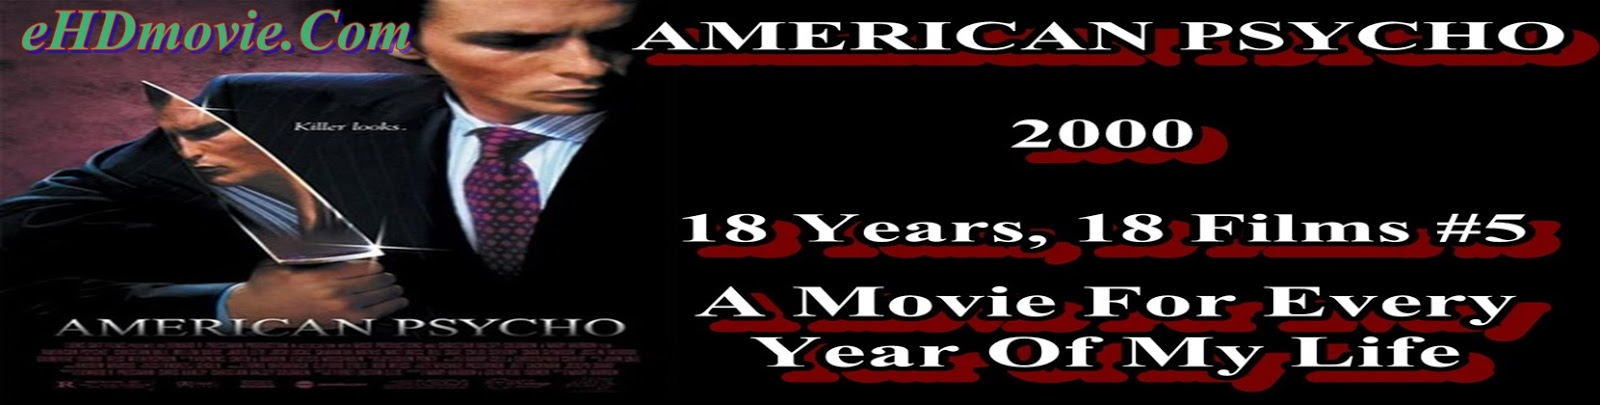 American Psycho 2000 Full Movie English 720p - 480p ORG BRRip 400MB - 800MB ESubs Free Download